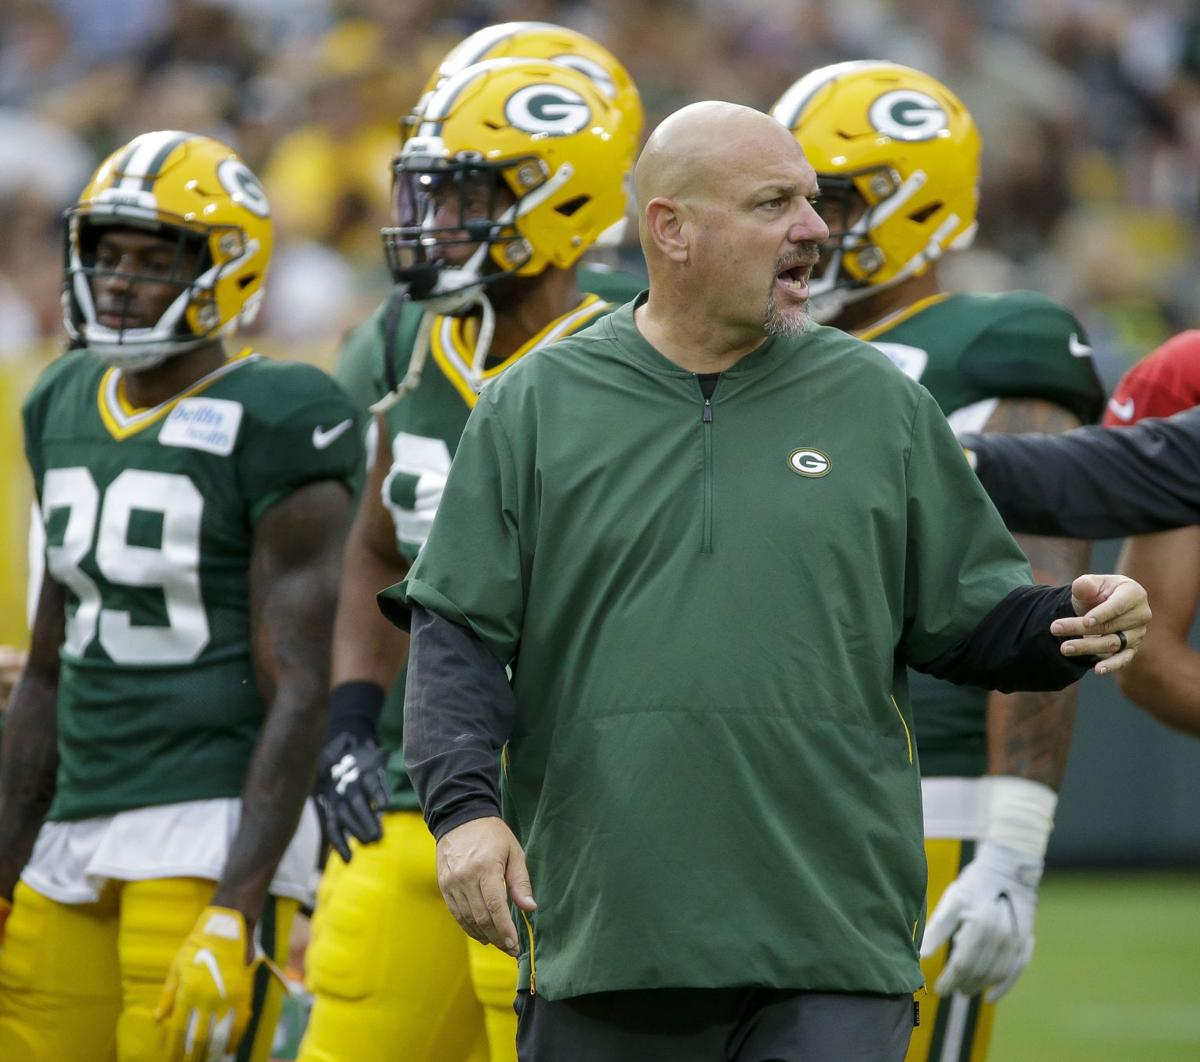 Mike Pettine web only photo